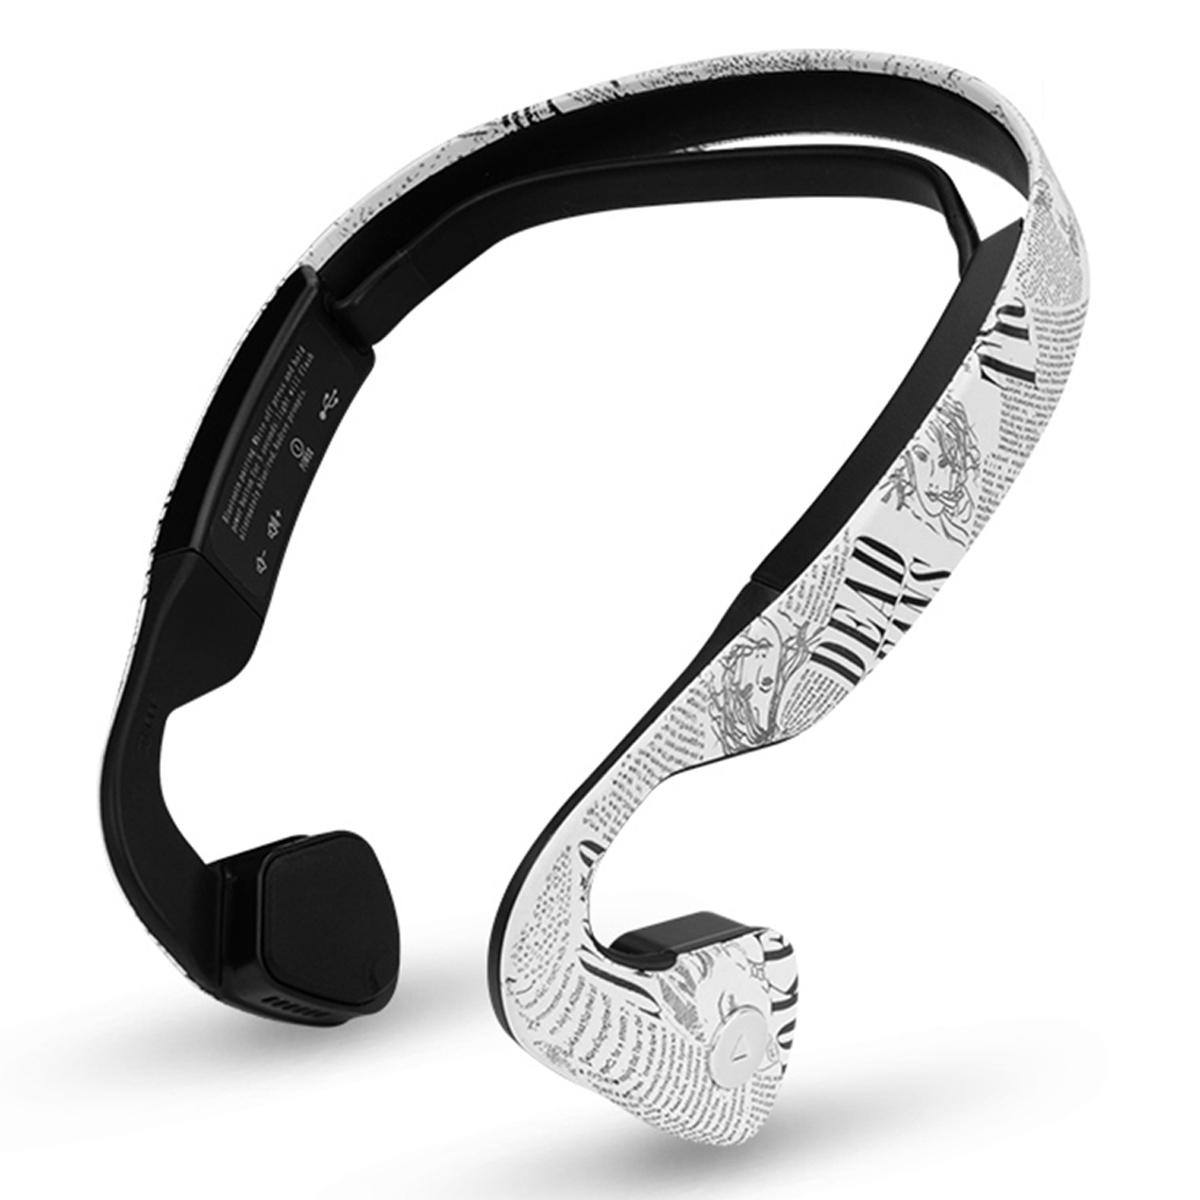 Cwxuan Conduction Bluetooth Stereo Sports Neckband Headphones - White